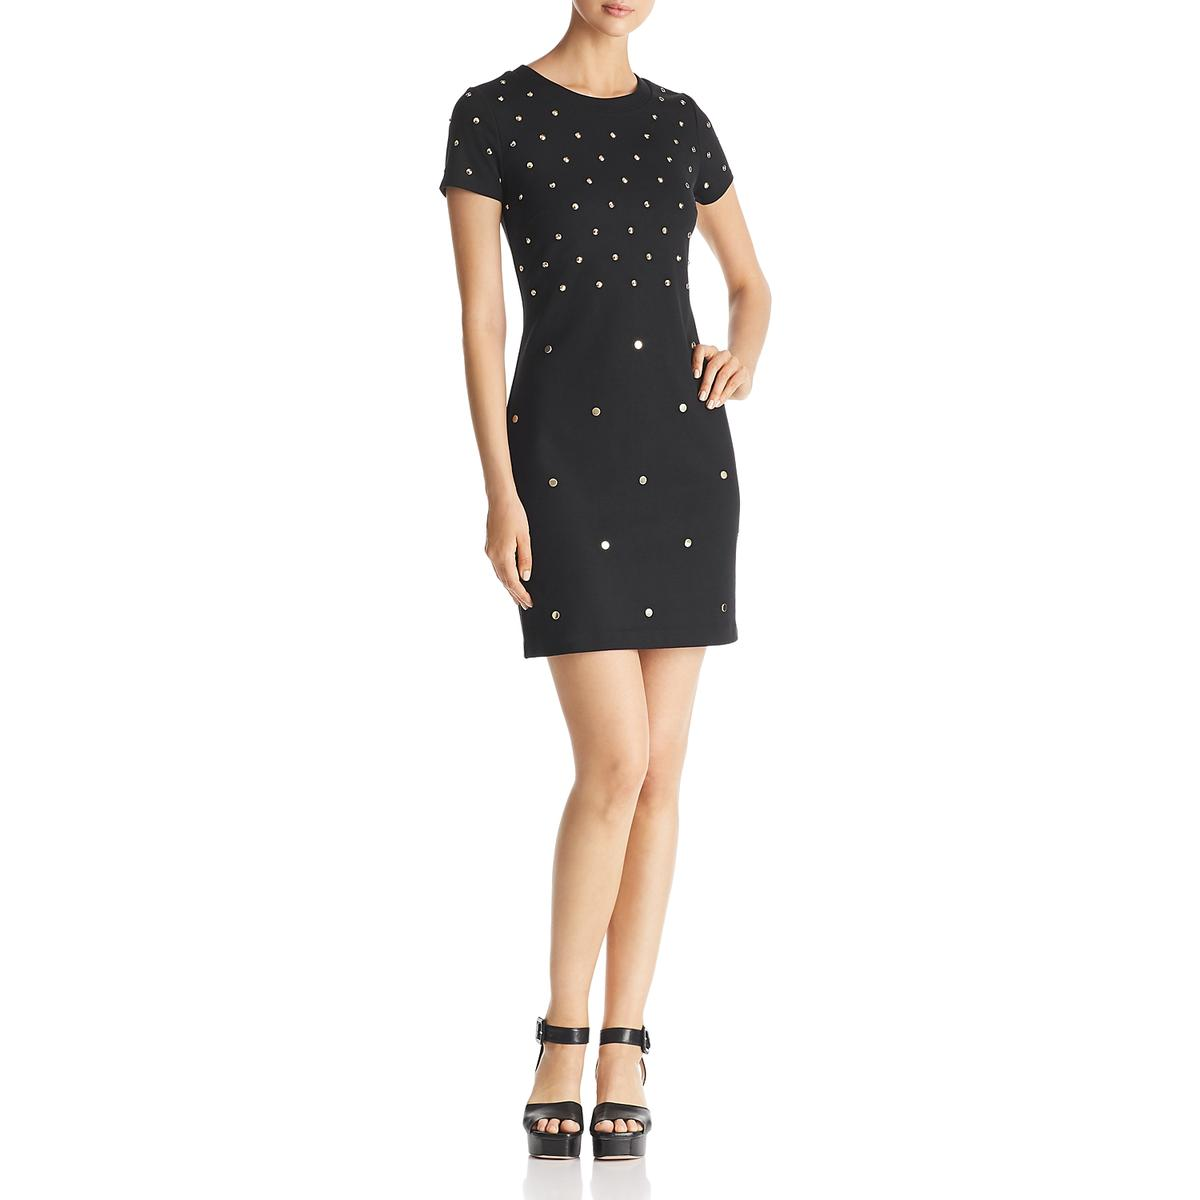 7c42510b40cf Michael Kors Womens Studded Day To Night Casual Dress